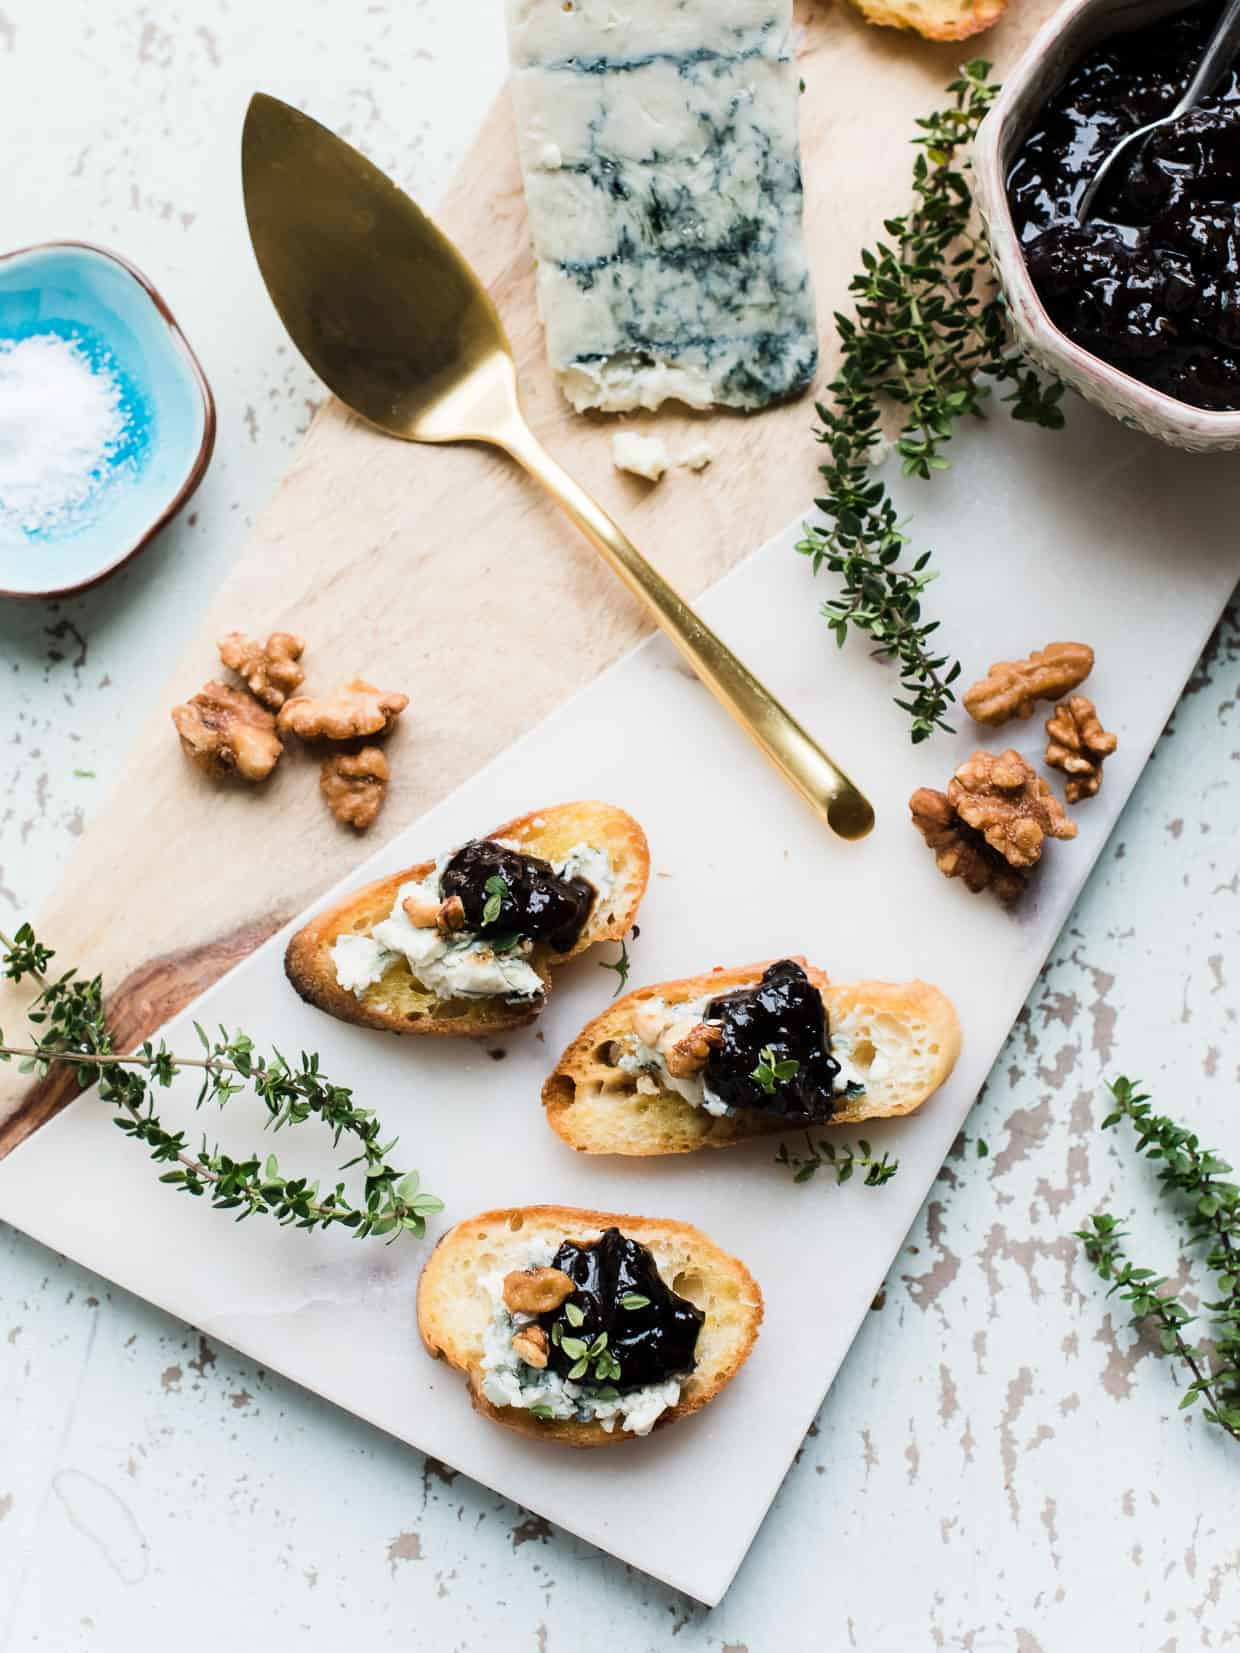 Crostini with Gorgonzola and Prune Chutney are little bites with BIG flavor, thanks to prunes reduced in wine and balsamic vinegar. Such an easy appetizer!